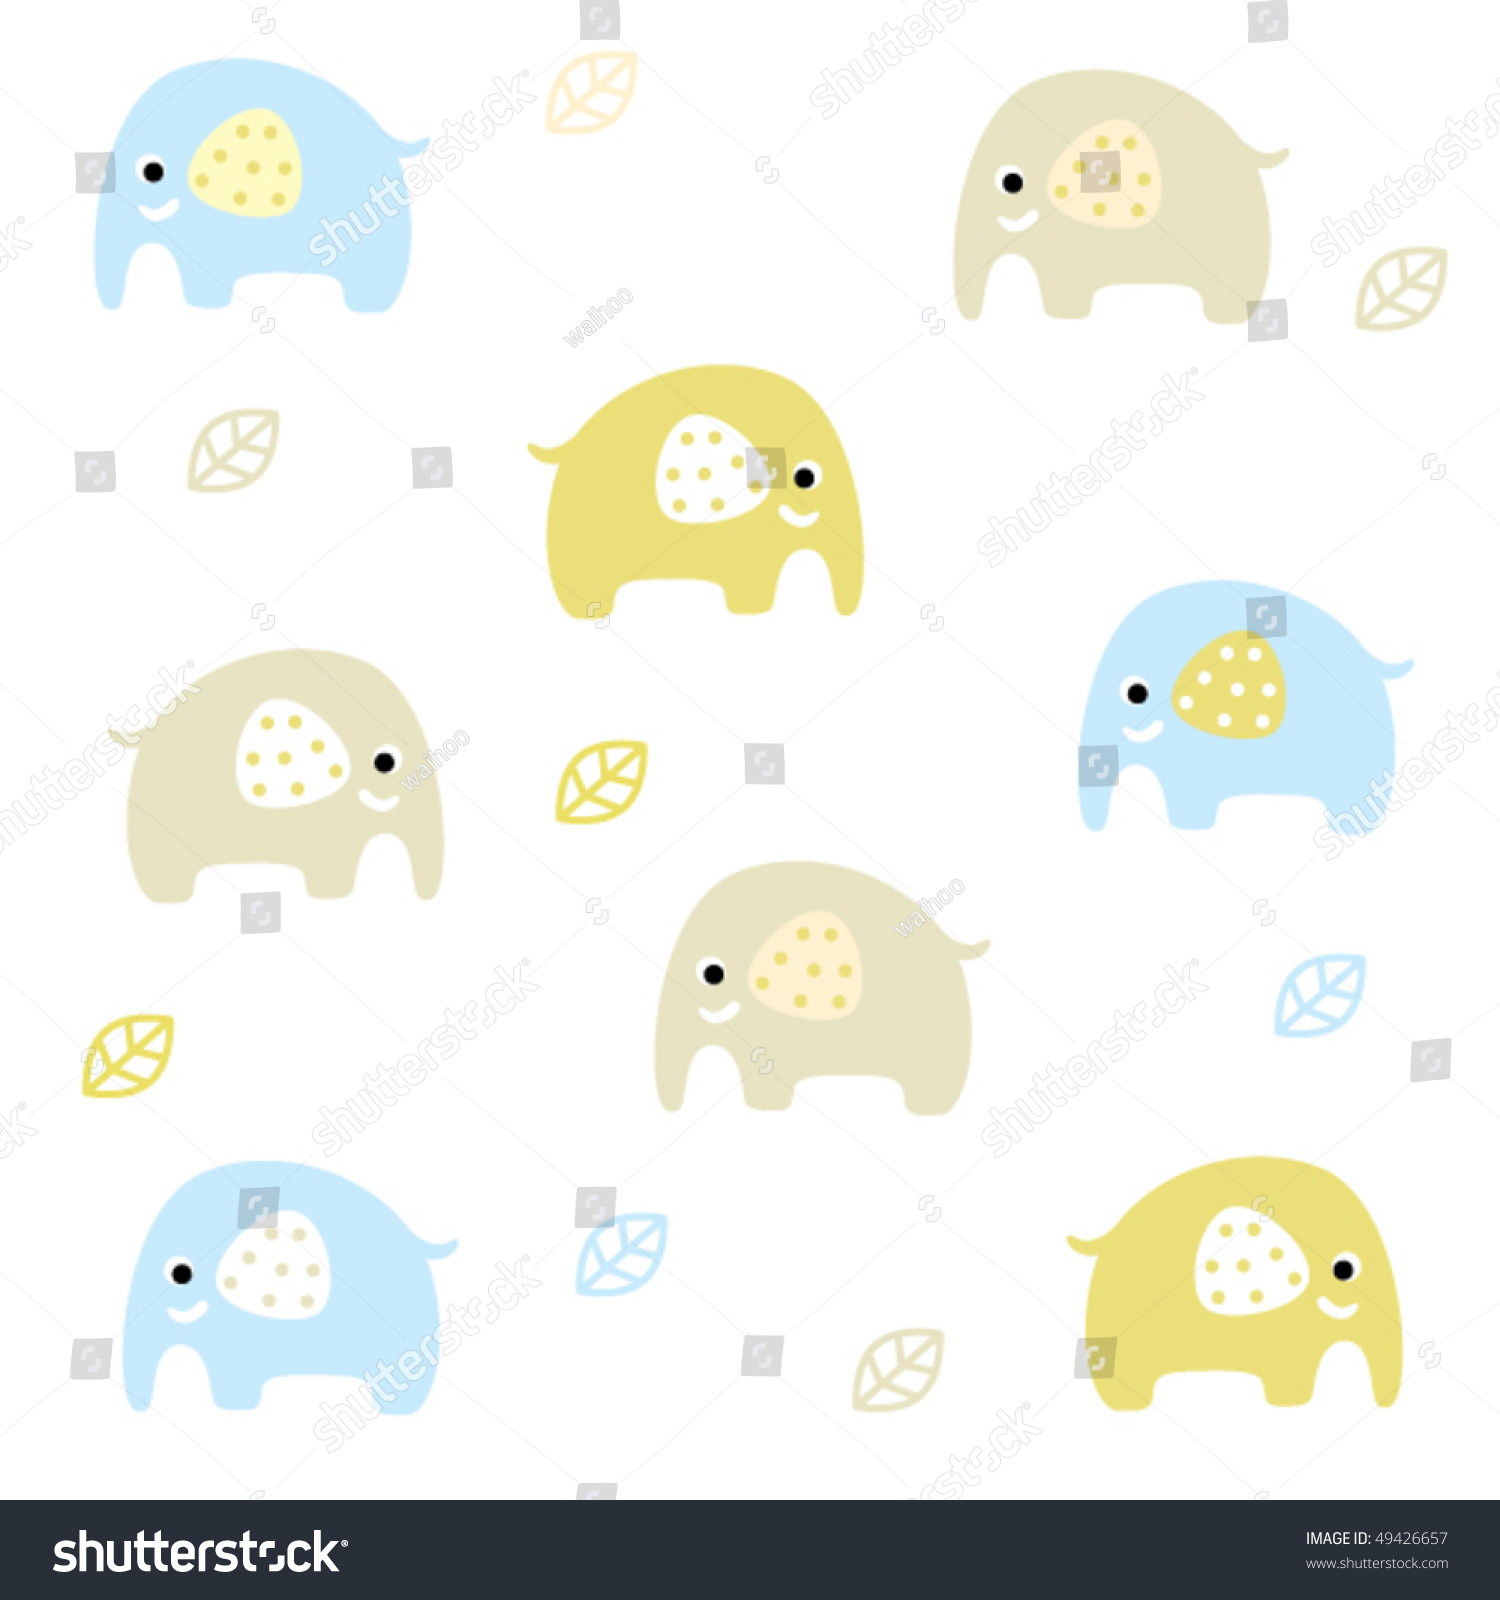 Cute elephant wrapping paper design stock vector for Cute paper designs